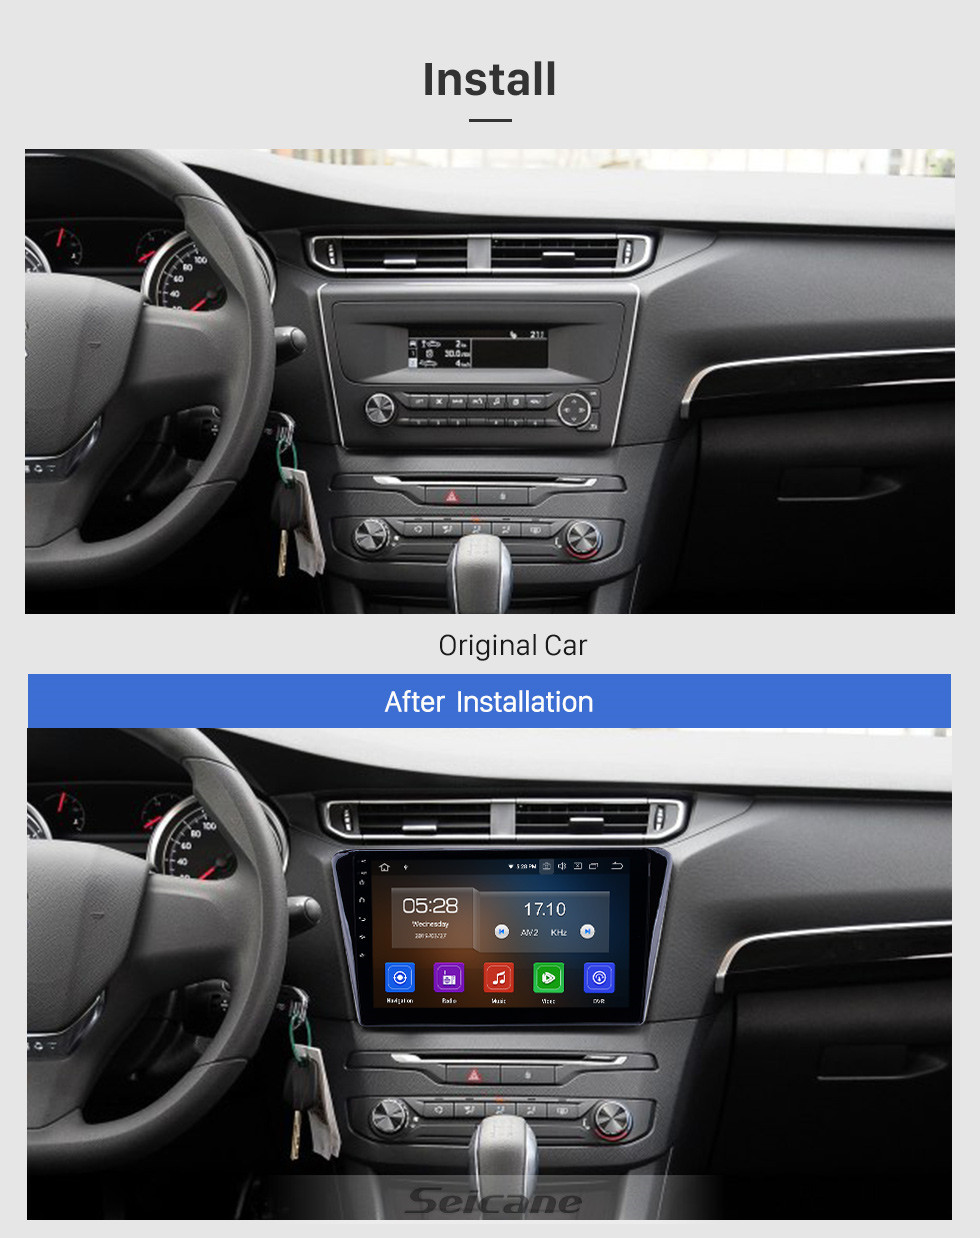 Seicane HD Touchscreen 10.1 inch Android 10.0 GPS Navigation Radio for 2014 Peugeot 408 with Bluetooth wifi USB Carplay support DVR DAB+ Steering Wheel Control